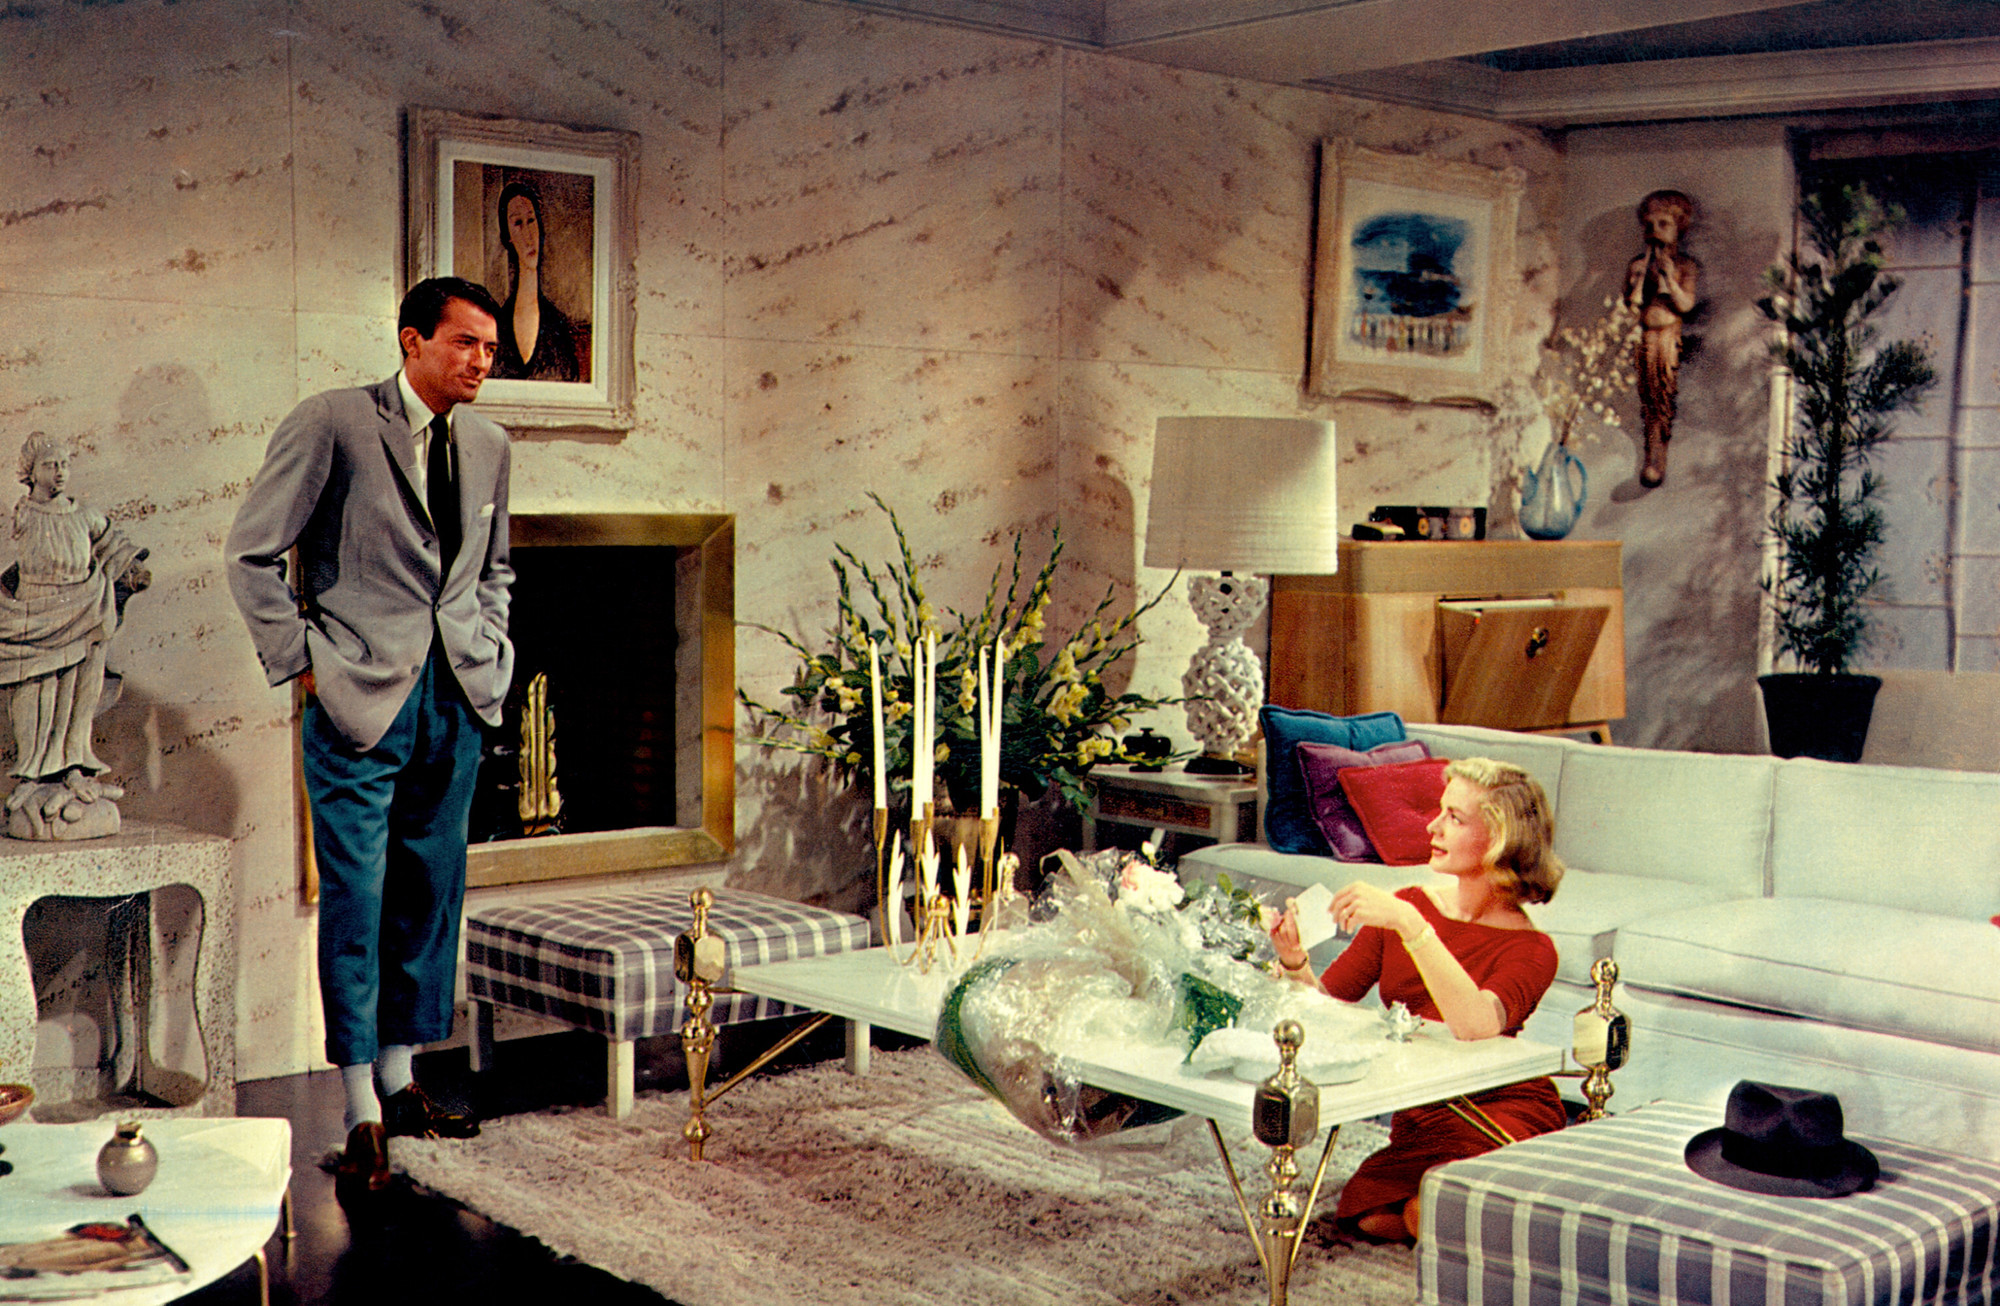 Designing Woman. 1957. USA. Directed by Vincente Minnelli. Courtesy MGM/Photofest